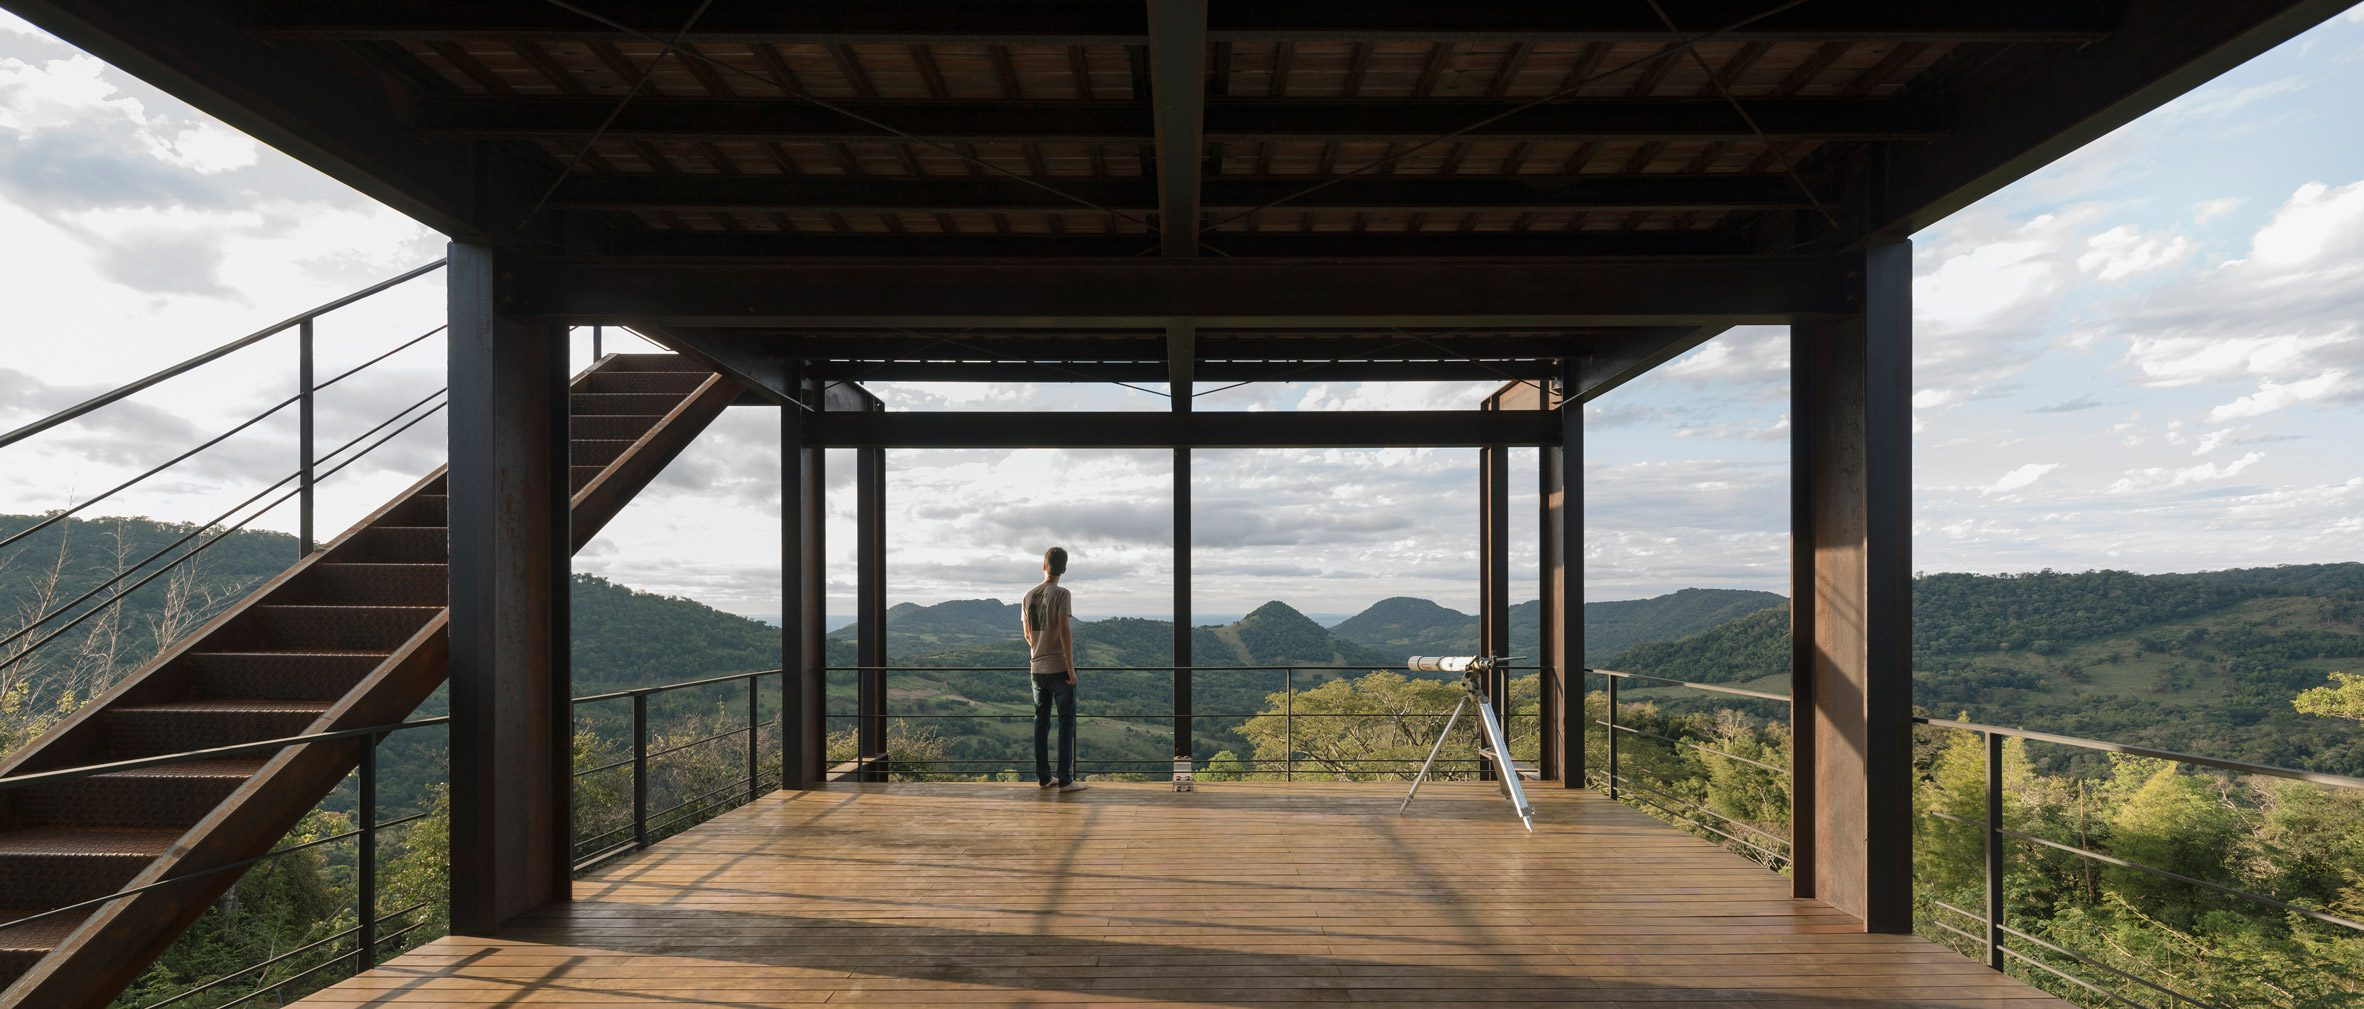 Steel-and-glass structure in Paraguay